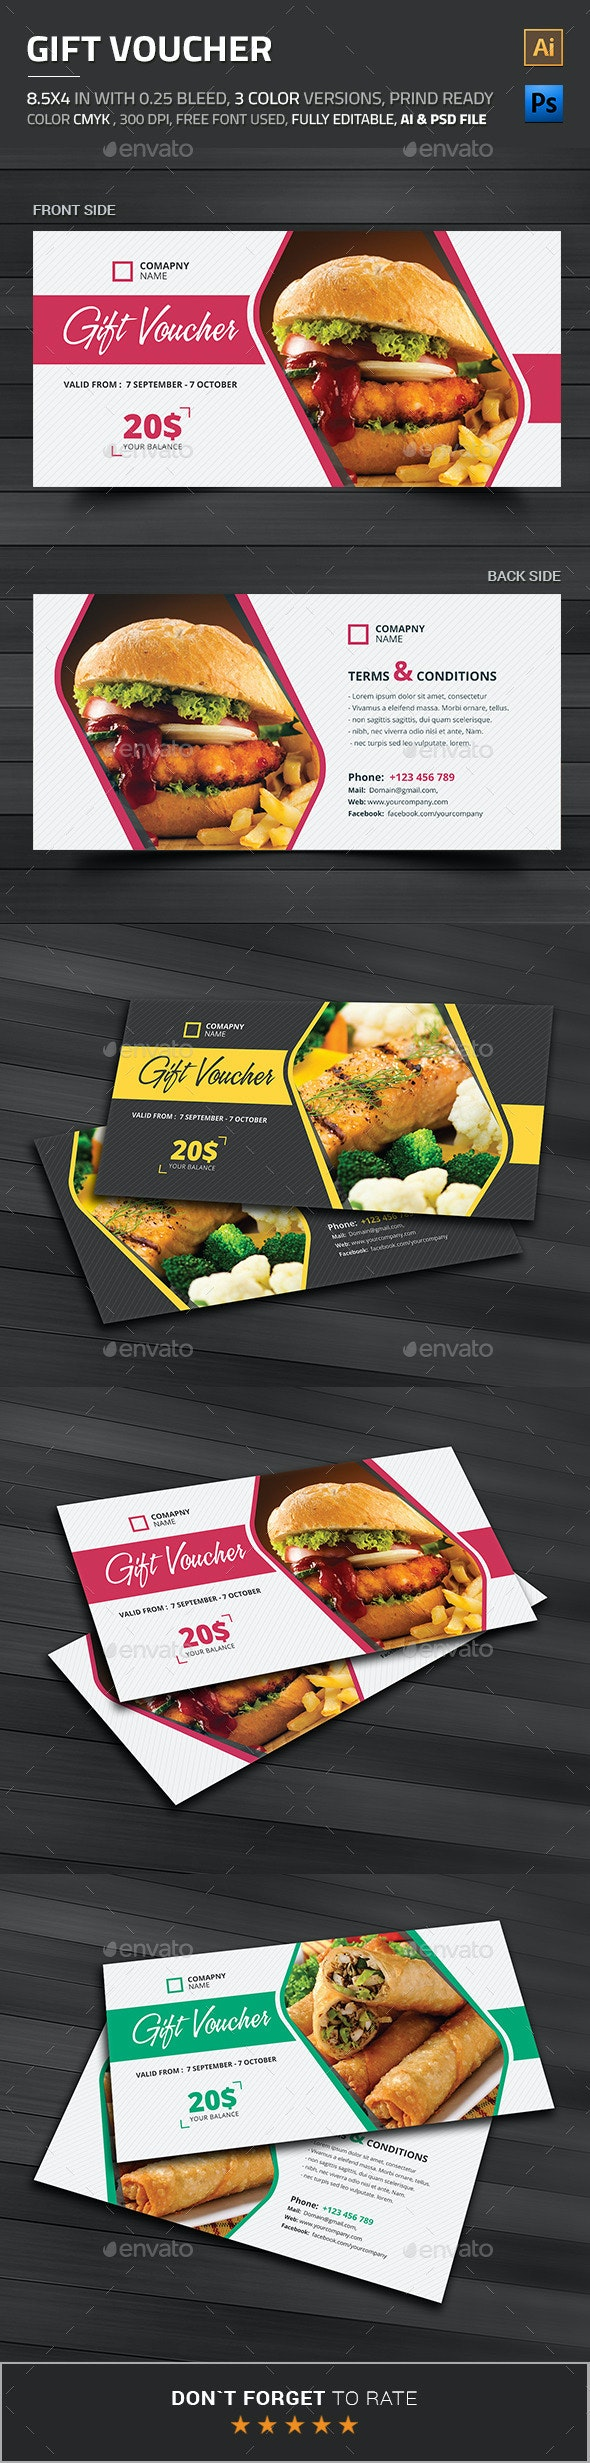 Gift Voucher - Loyalty Cards Cards & Invites